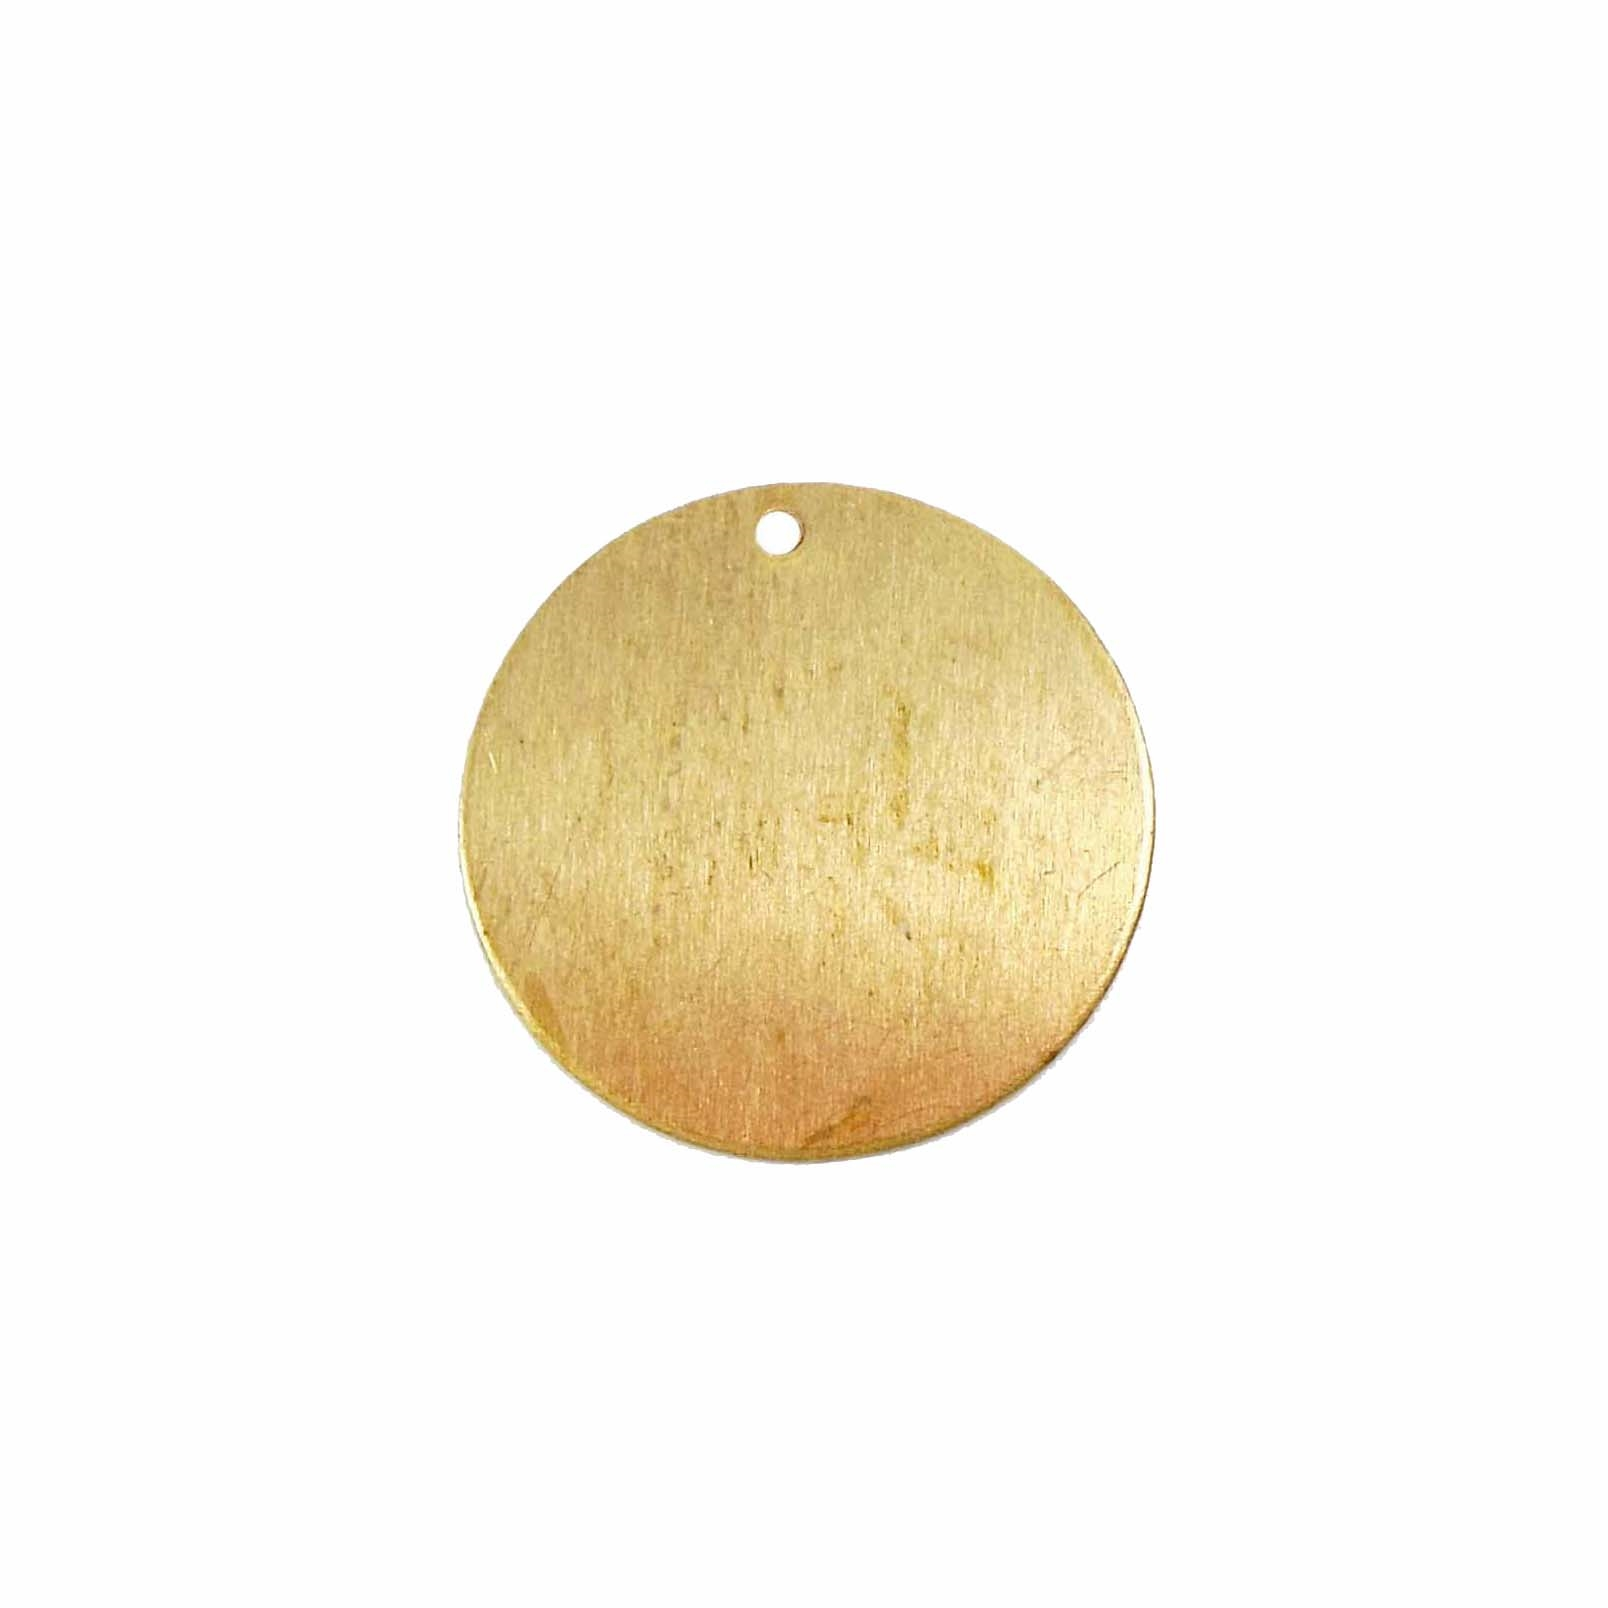 brass base, brass pendant, raw brass, 22mm, circle base, round base, round blank, blank, circle blank, brass blank, jewelry supplies, Bsue Boutiques